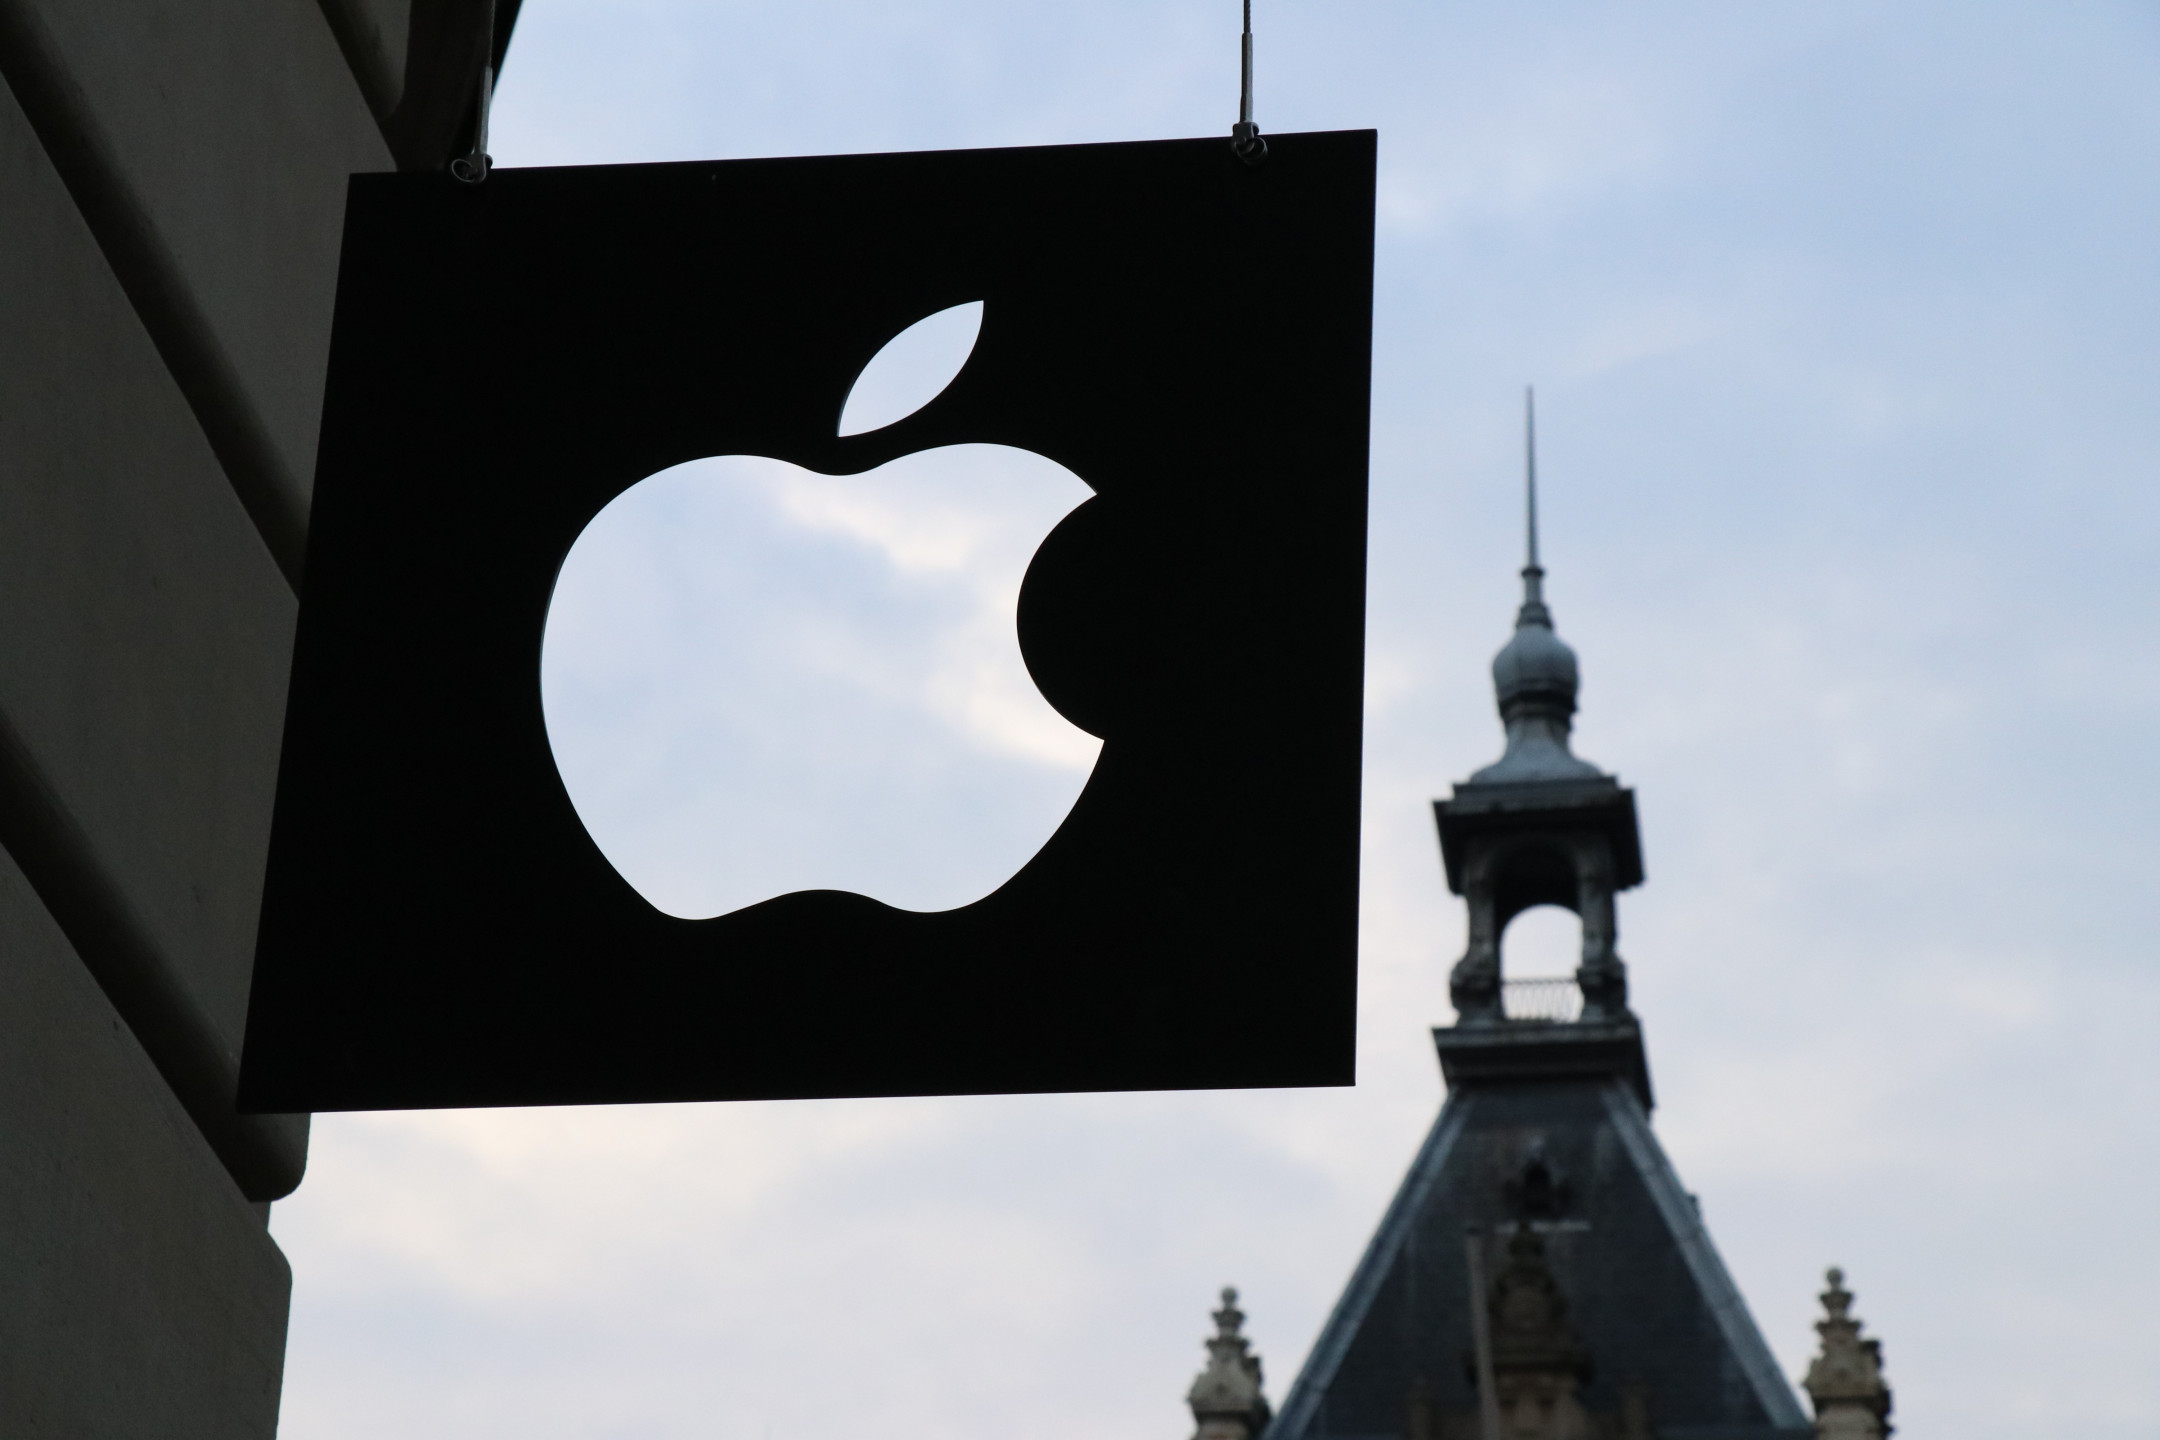 Apple Exec sees long-term potential in cryptocurrencies